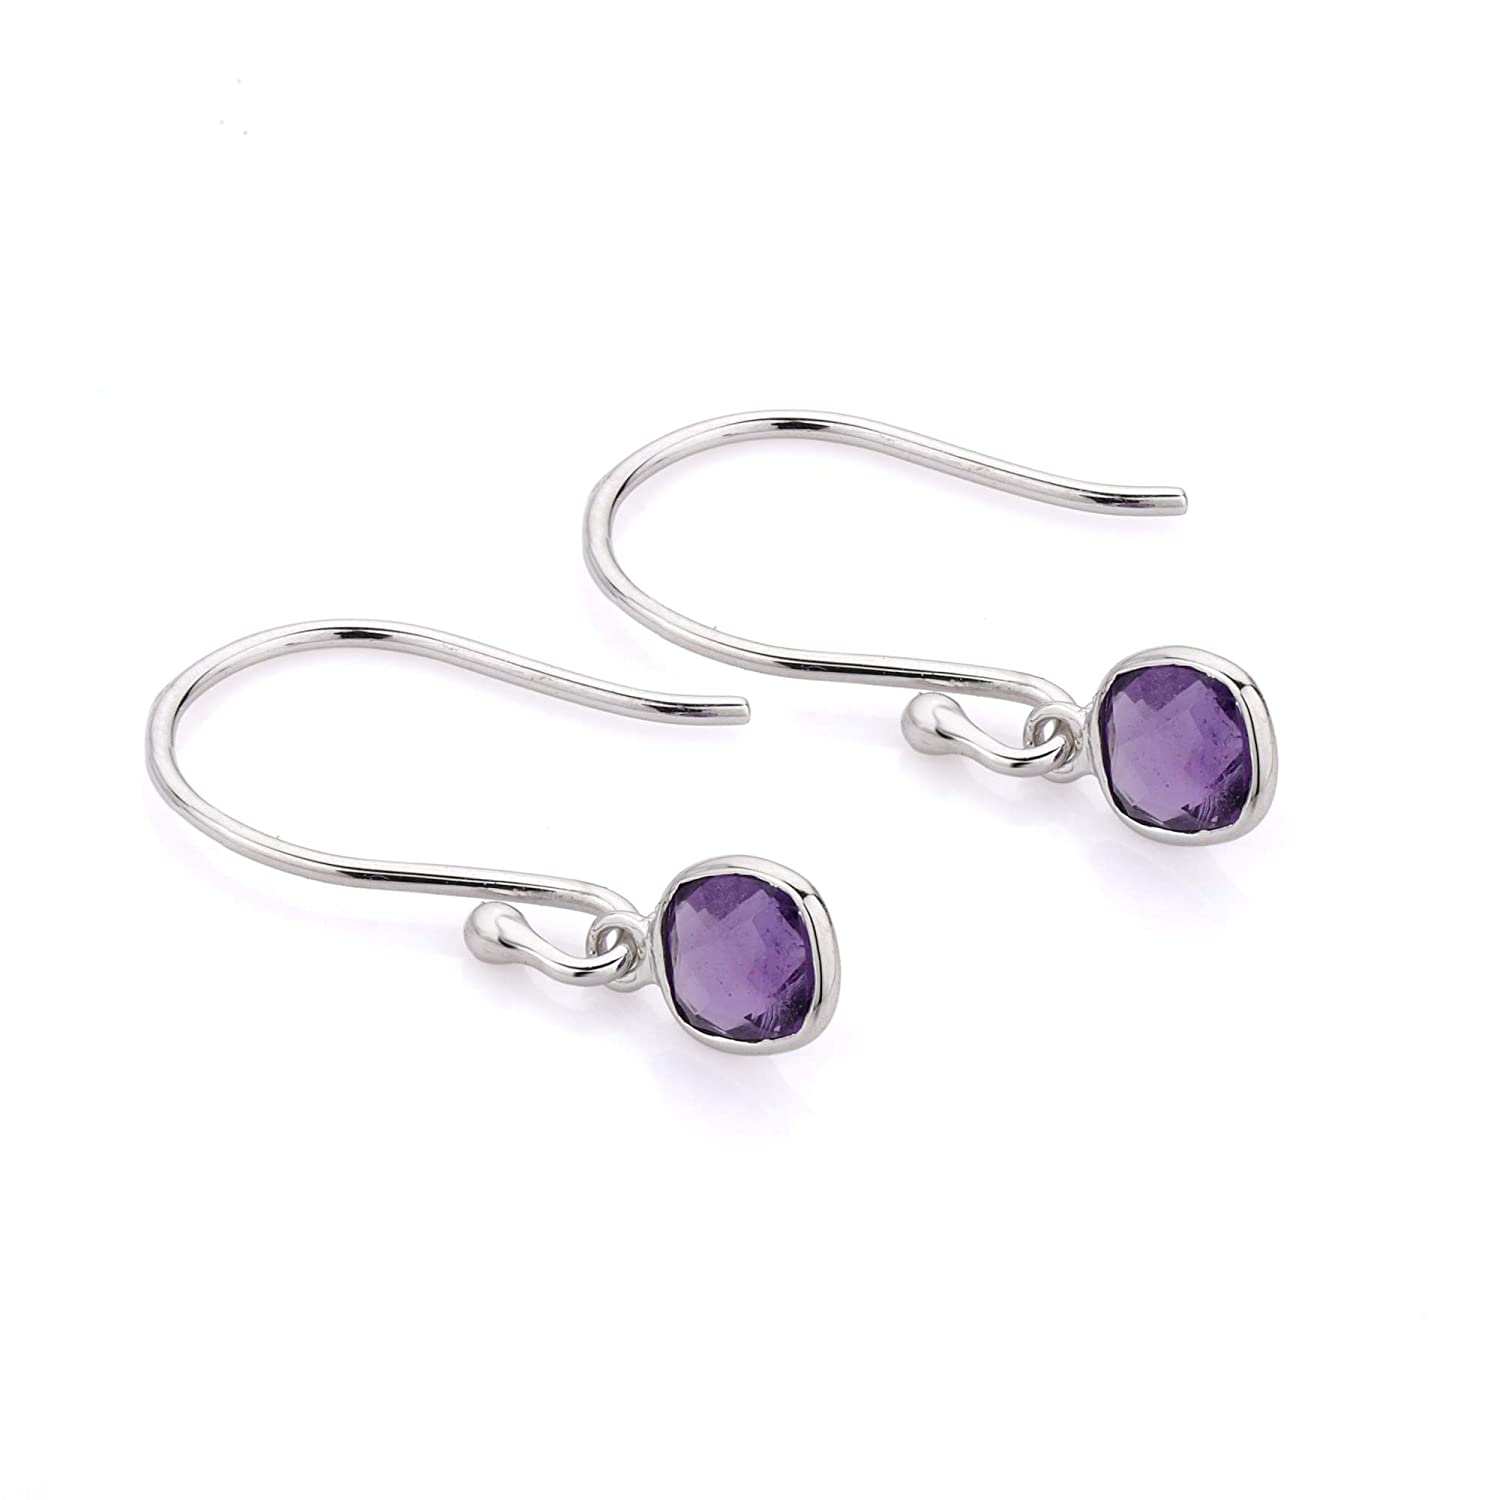 14K White Gold 0.99Cts Cushion Both Side Checker Cut Natural Amethyst Dangling Earring Halloween Gift